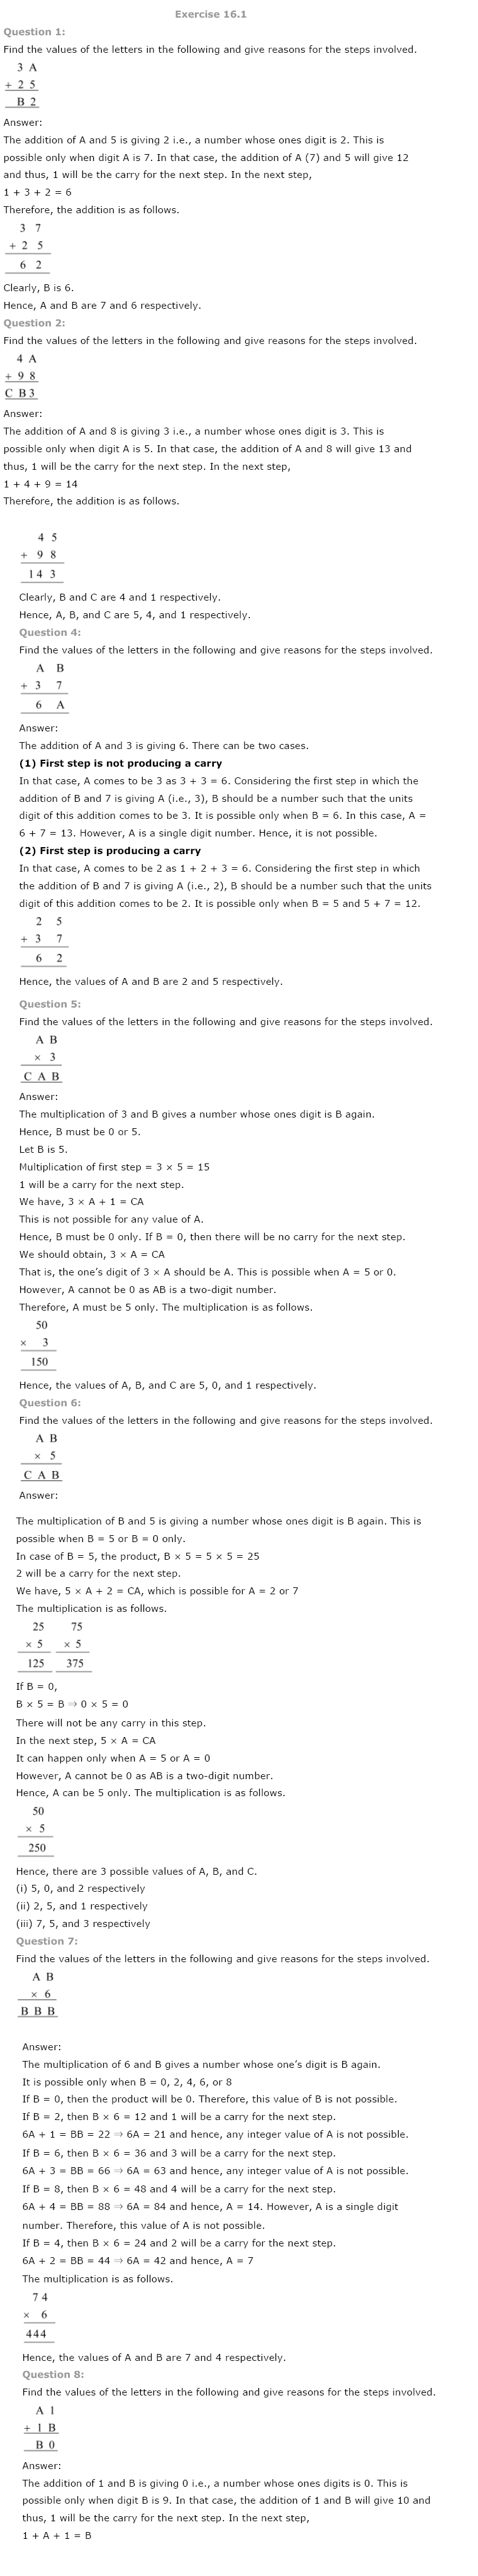 CBSE NCERT Class VIII (8th) | Mathematics, Playing with Numbers, CBSE NCERT Solved Question Answer, CBSE NCERT Book Solutions for Class 8.